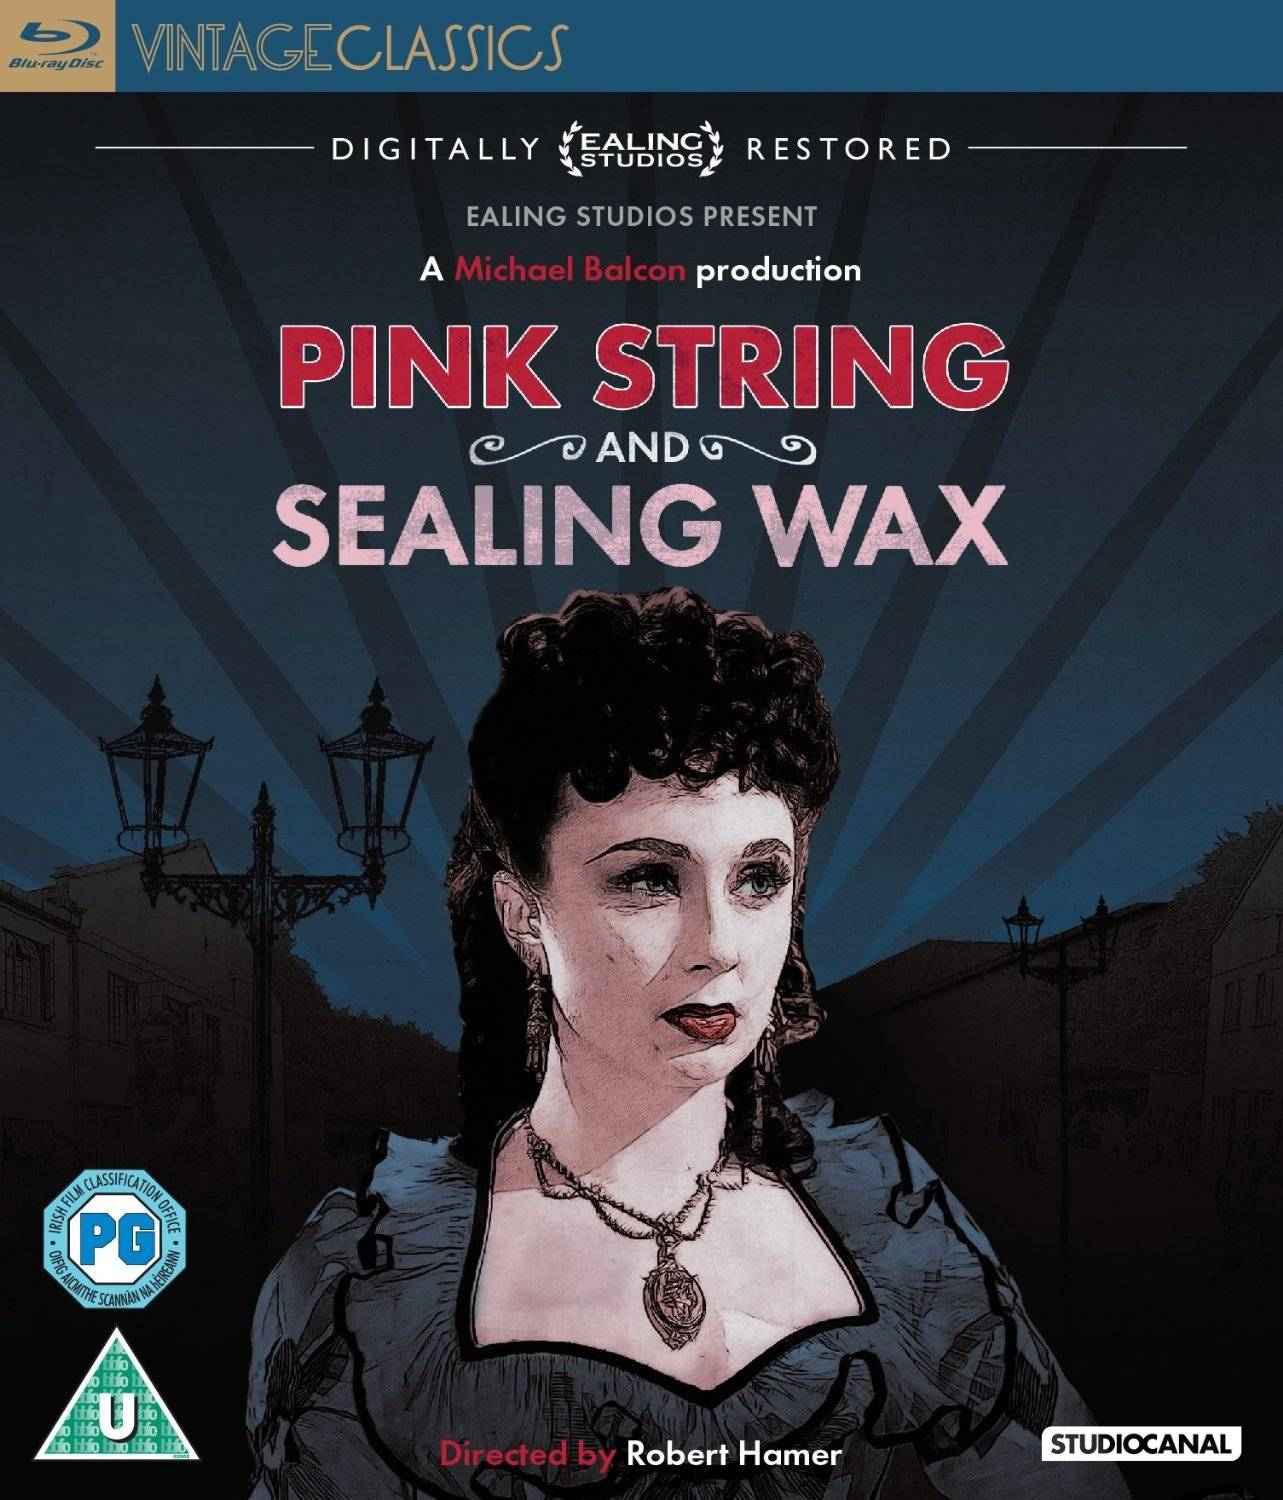 Pink String and Sealing Wax (1945)